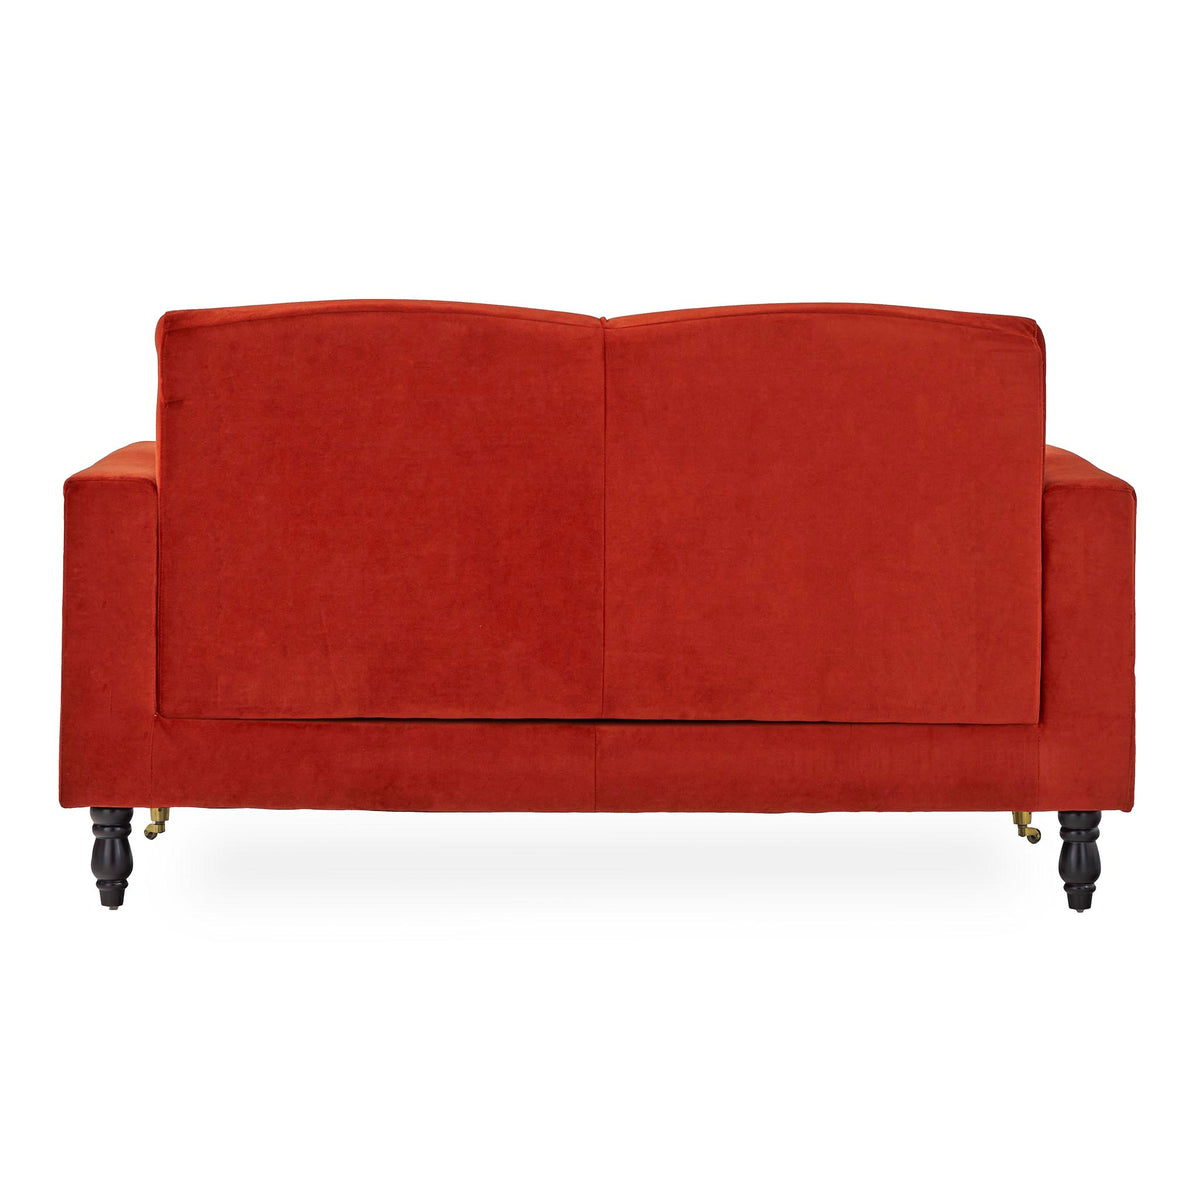 back view of the Piper Apricot 2 Seater Sofa from Roseland Furniture